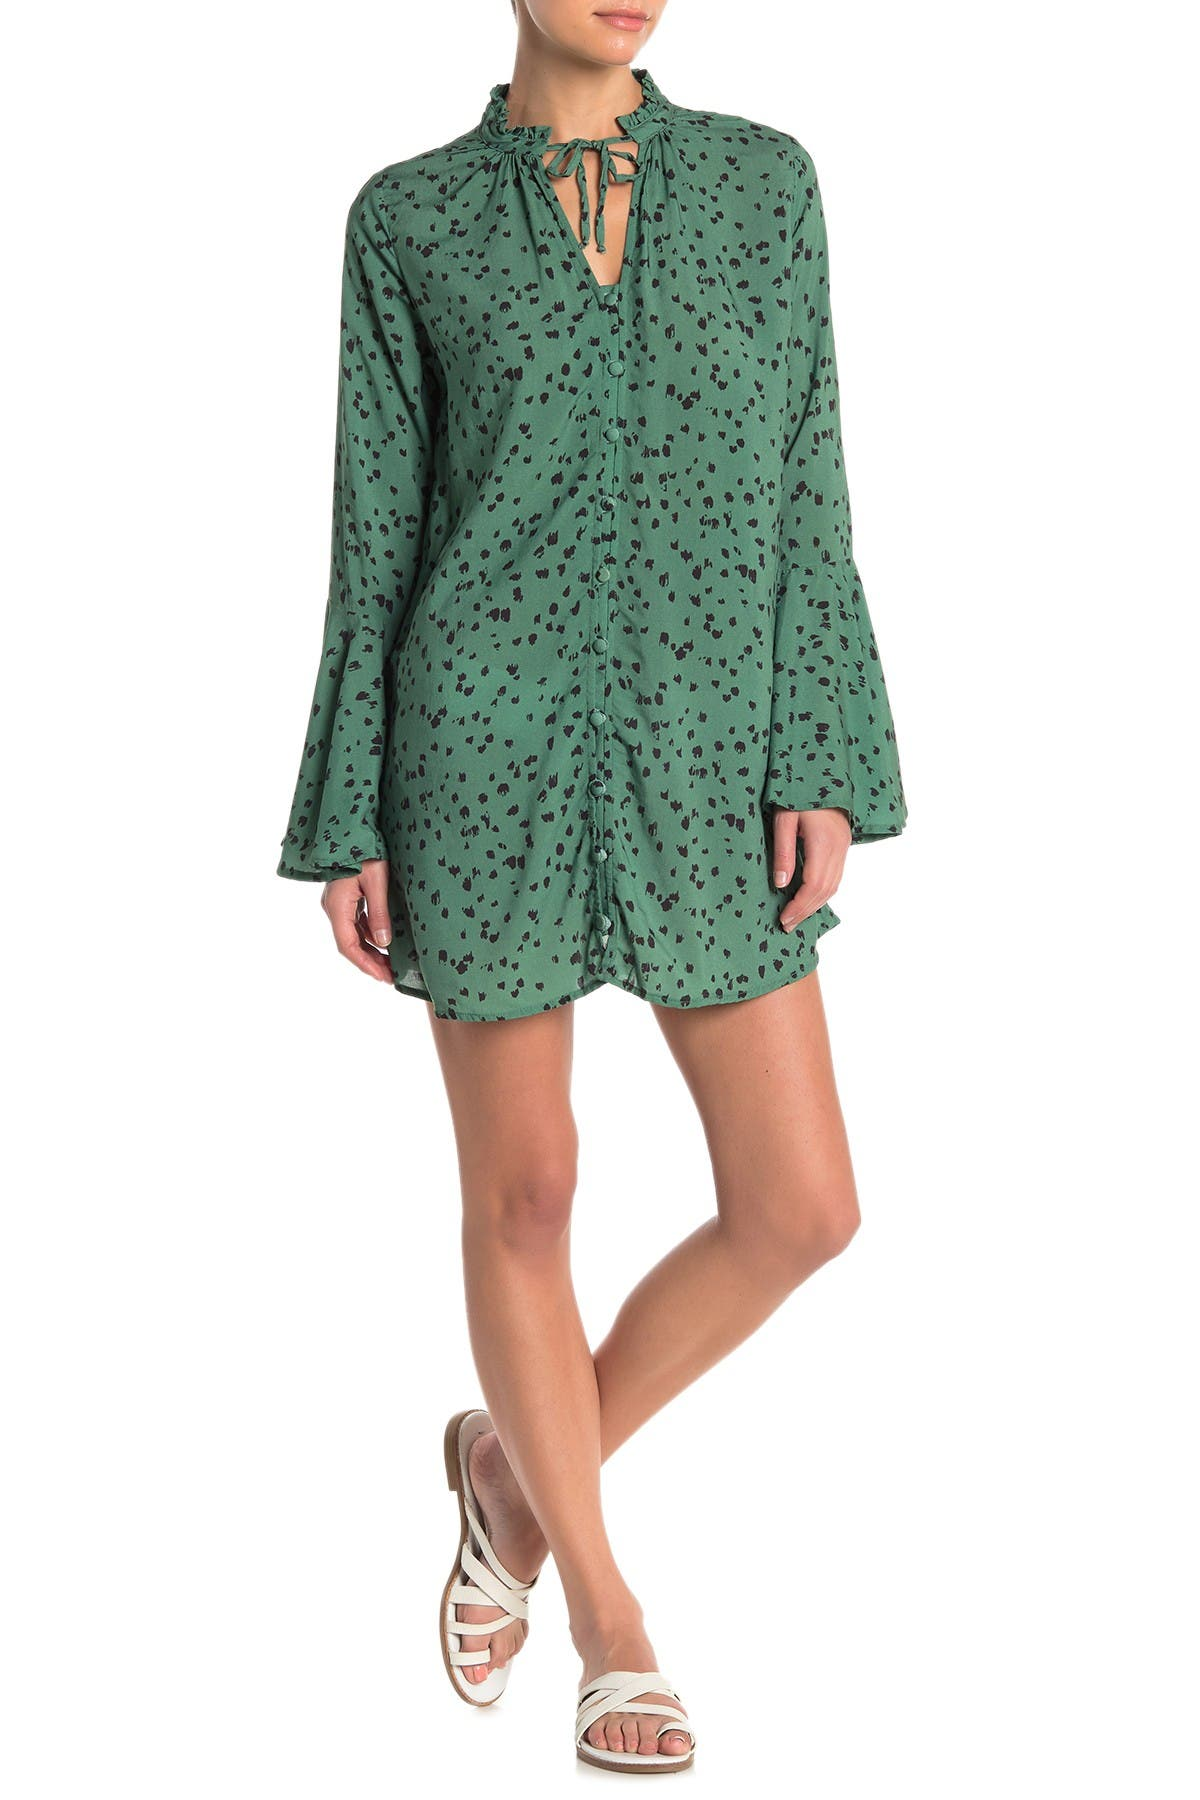 Image of Maaji Green Barrier Reef Cover-Up Tunic